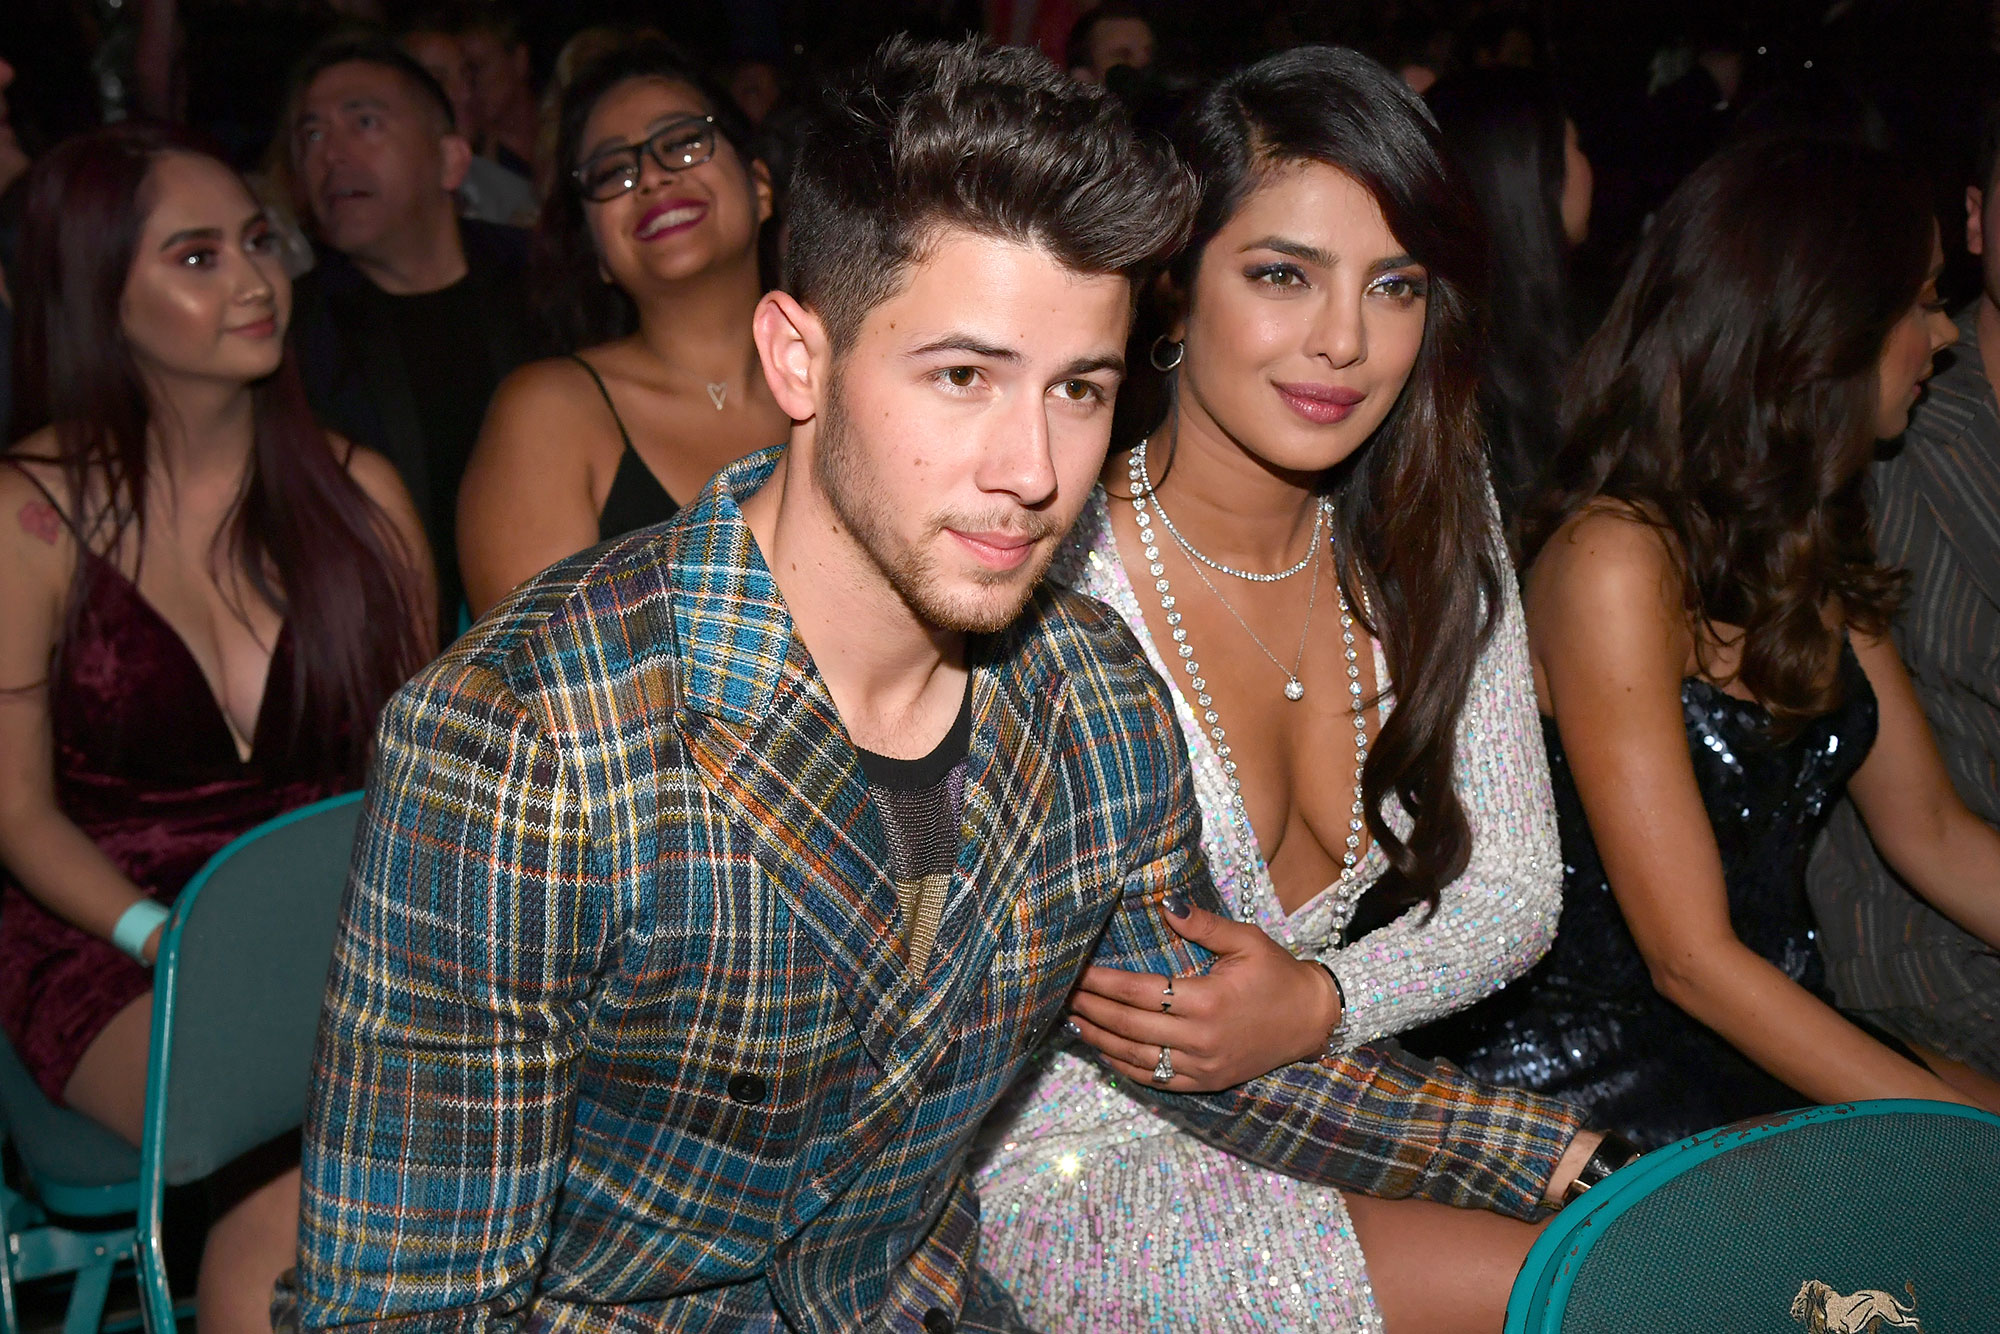 Nick-Jonas-and-Priyanka-Chopra-In-Seats-Billboard-Music-Awards-2019 - Nick and Priyanka stole a kiss during the Jonas Brothers' performance.